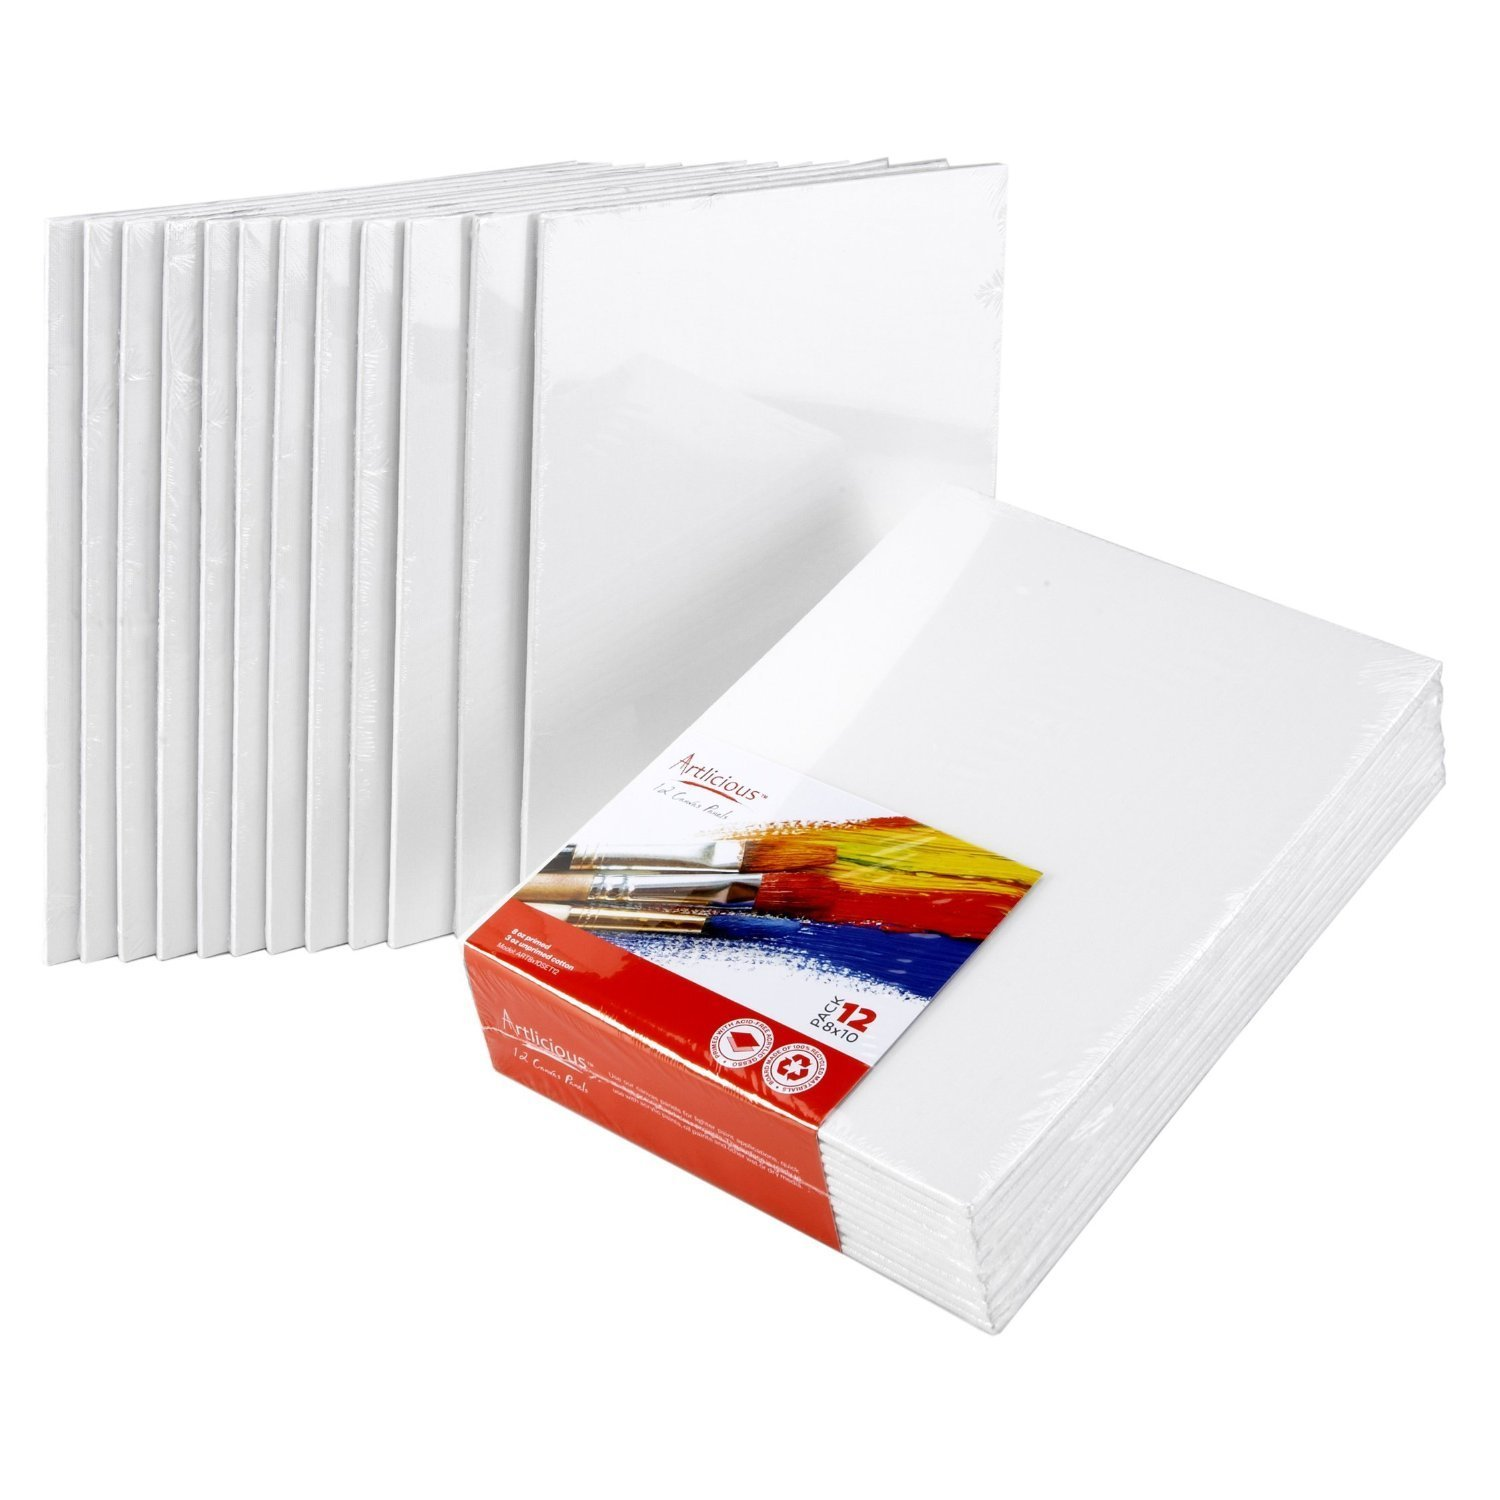 """CANVAS PANELS 12 PACK - 8""""X10"""" SUPER VALUE PACK Artist Canvas Panel Boards for Painting"""